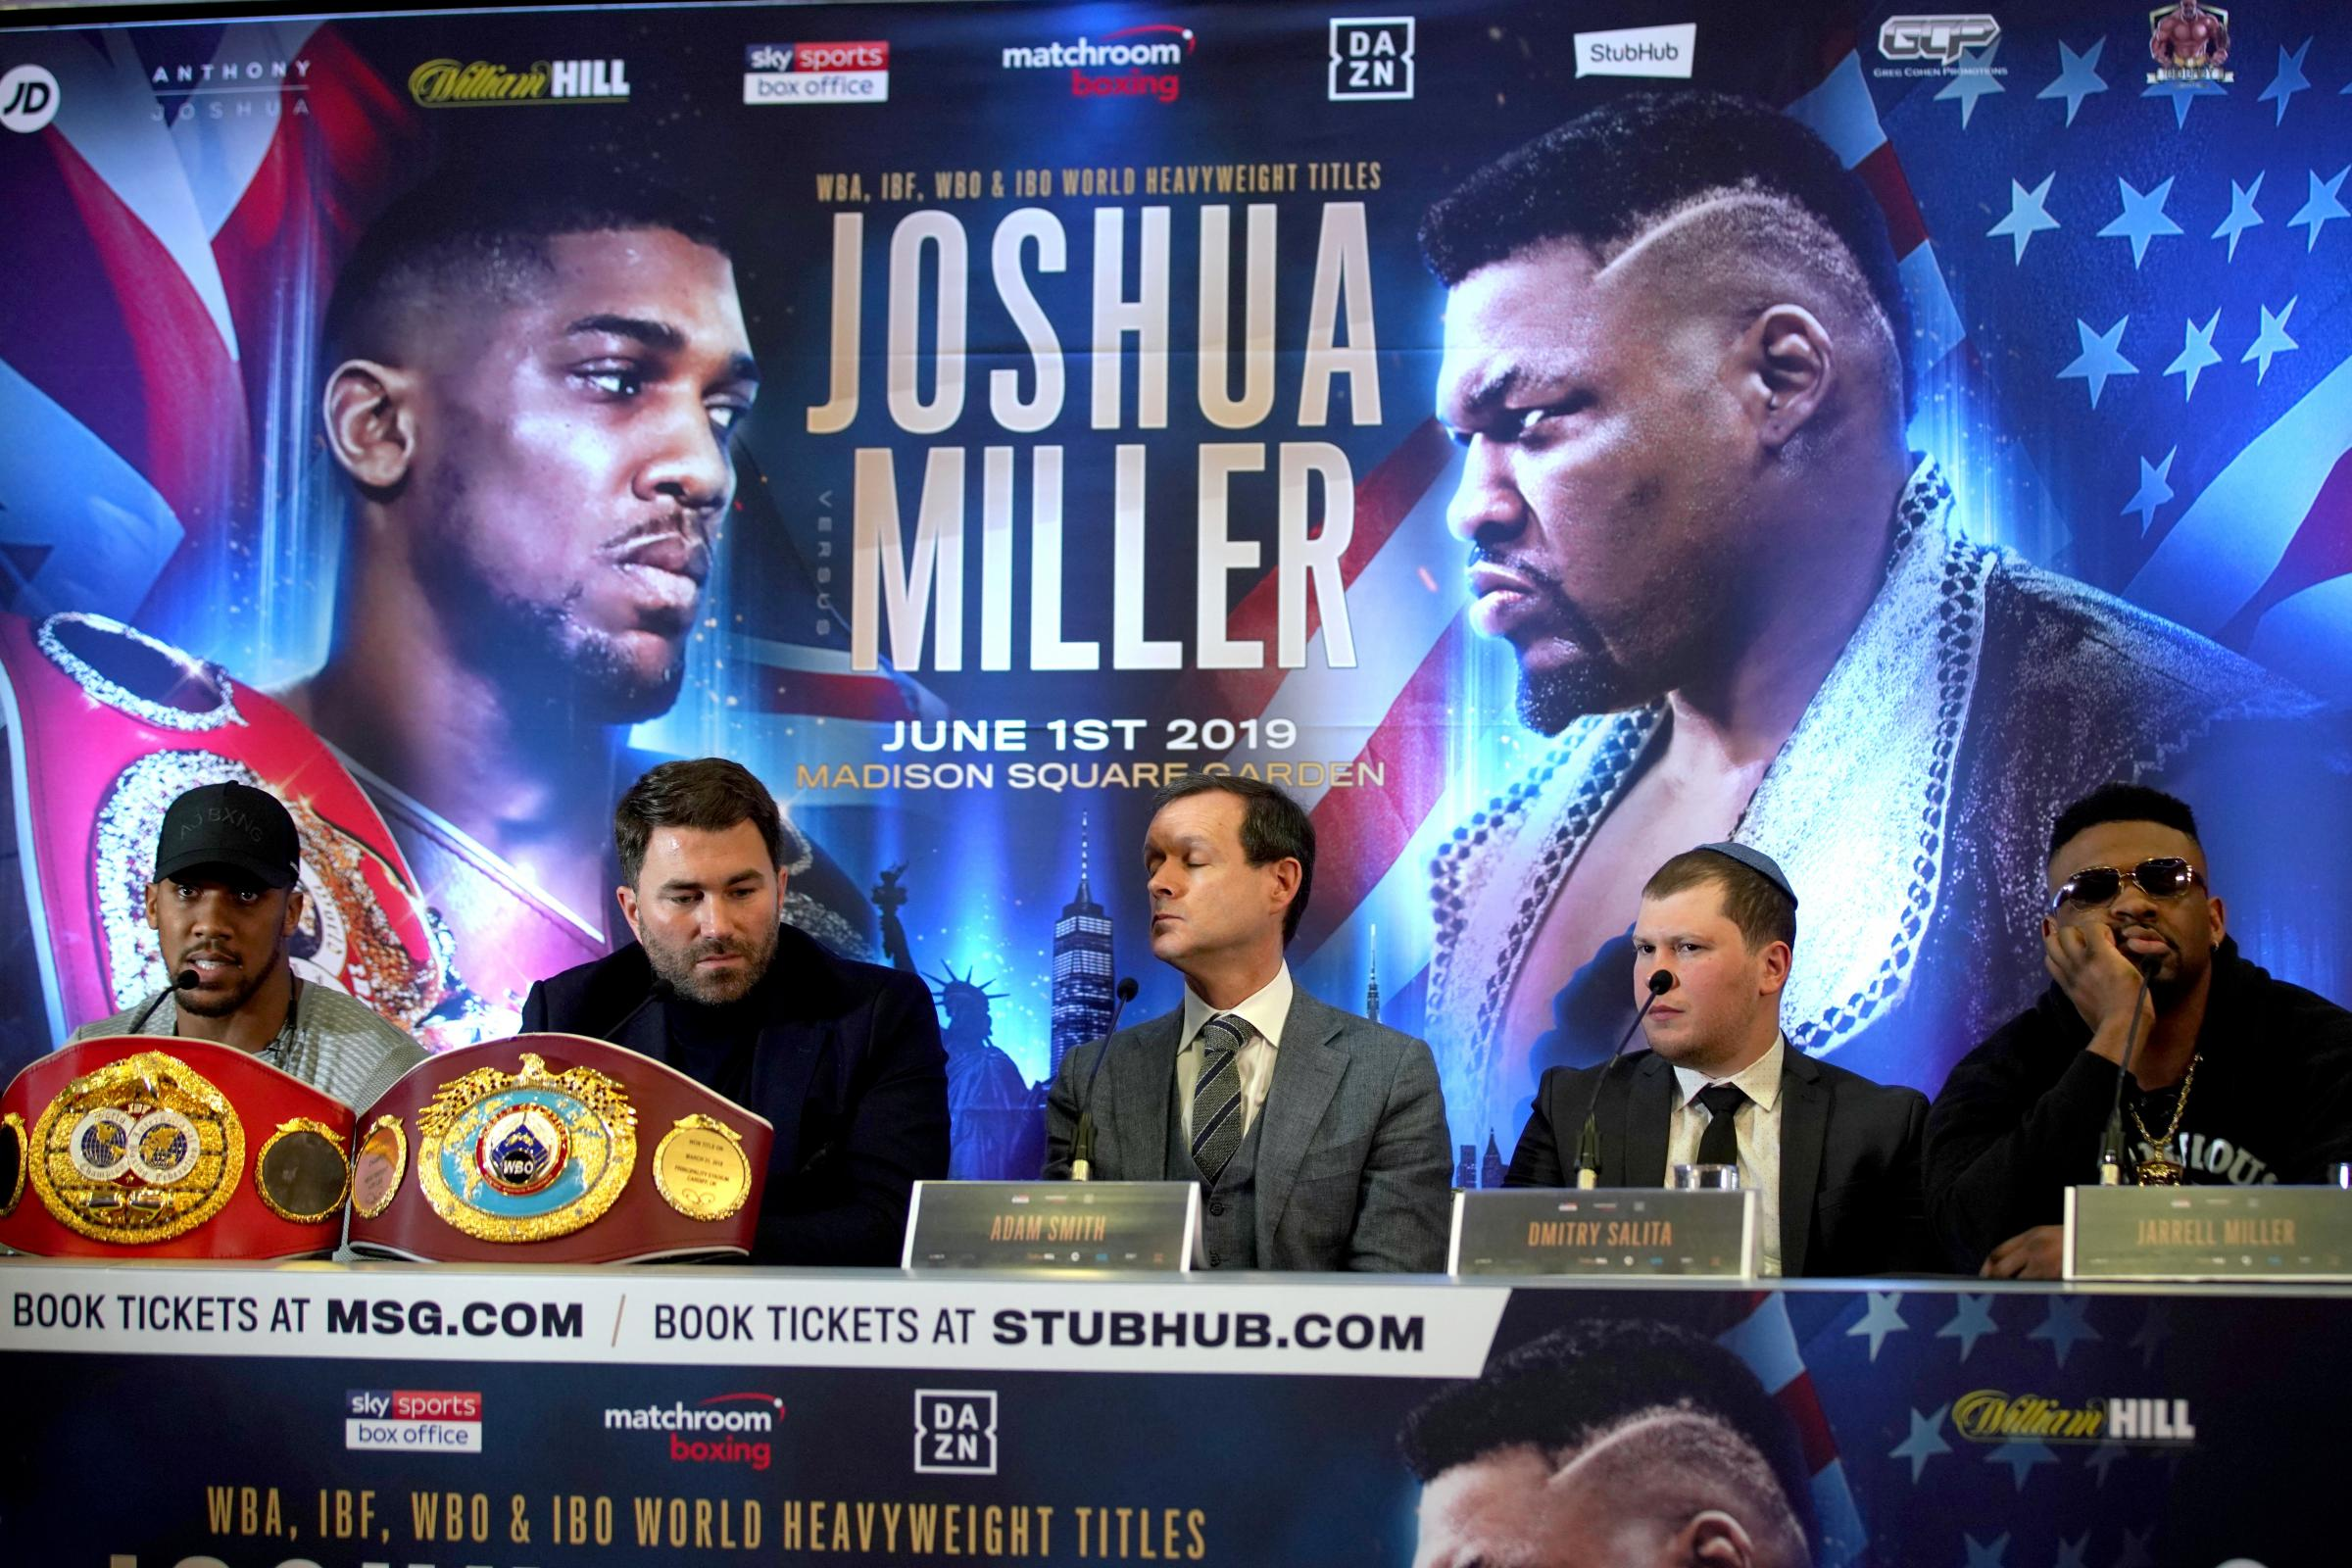 Anthony Joshua (left) and Jarrell Miller (right) were due to face each other in New York this summer